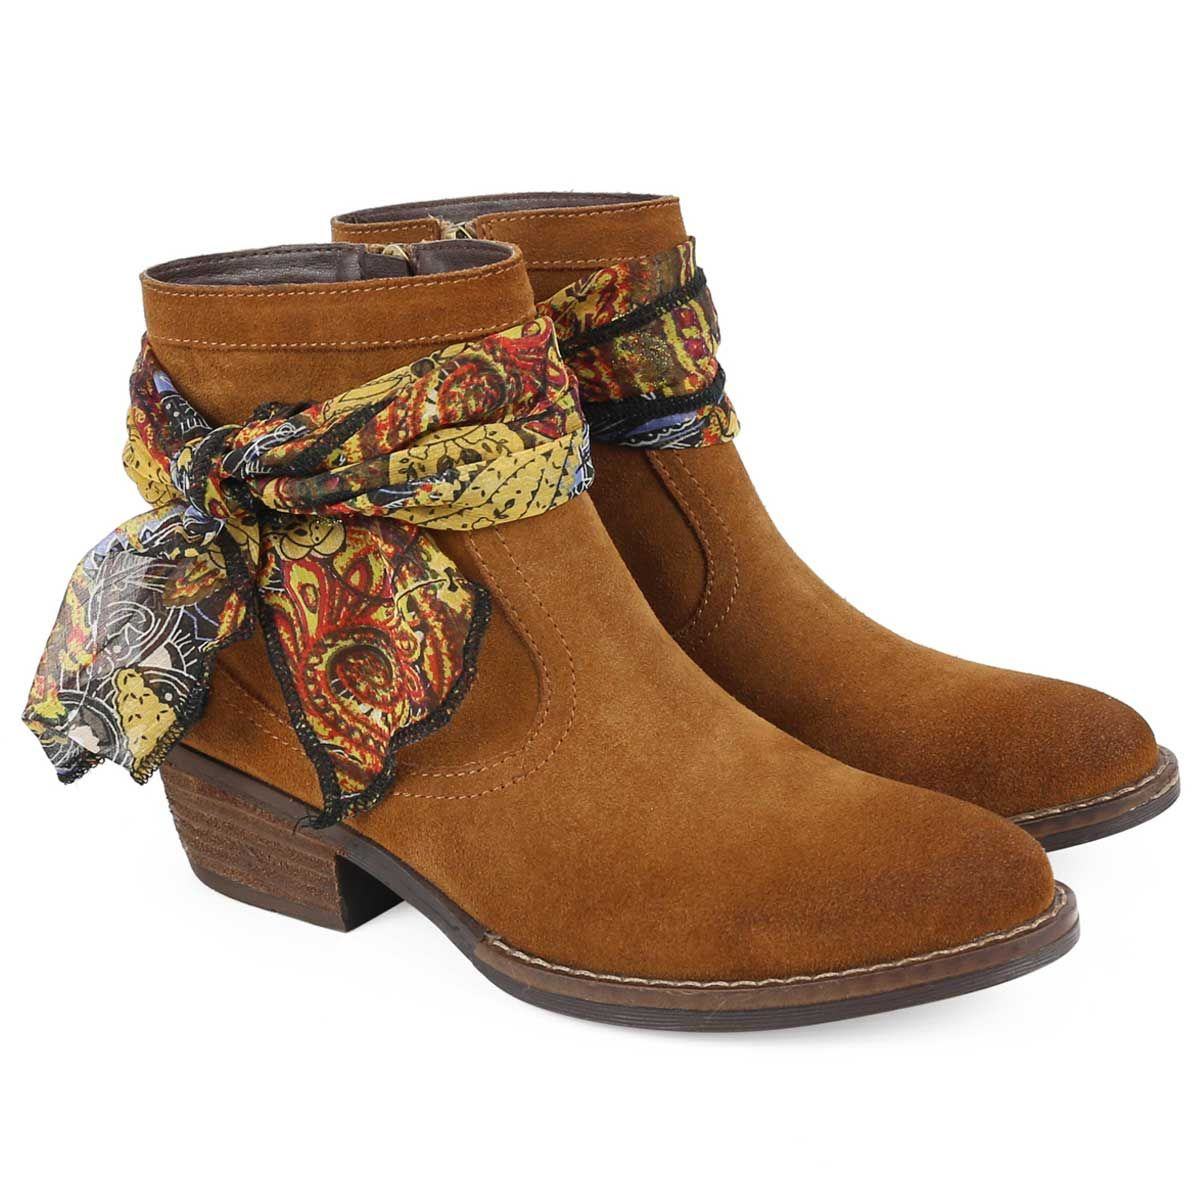 Montevita Scarf Tie Ankle Boot in Camel